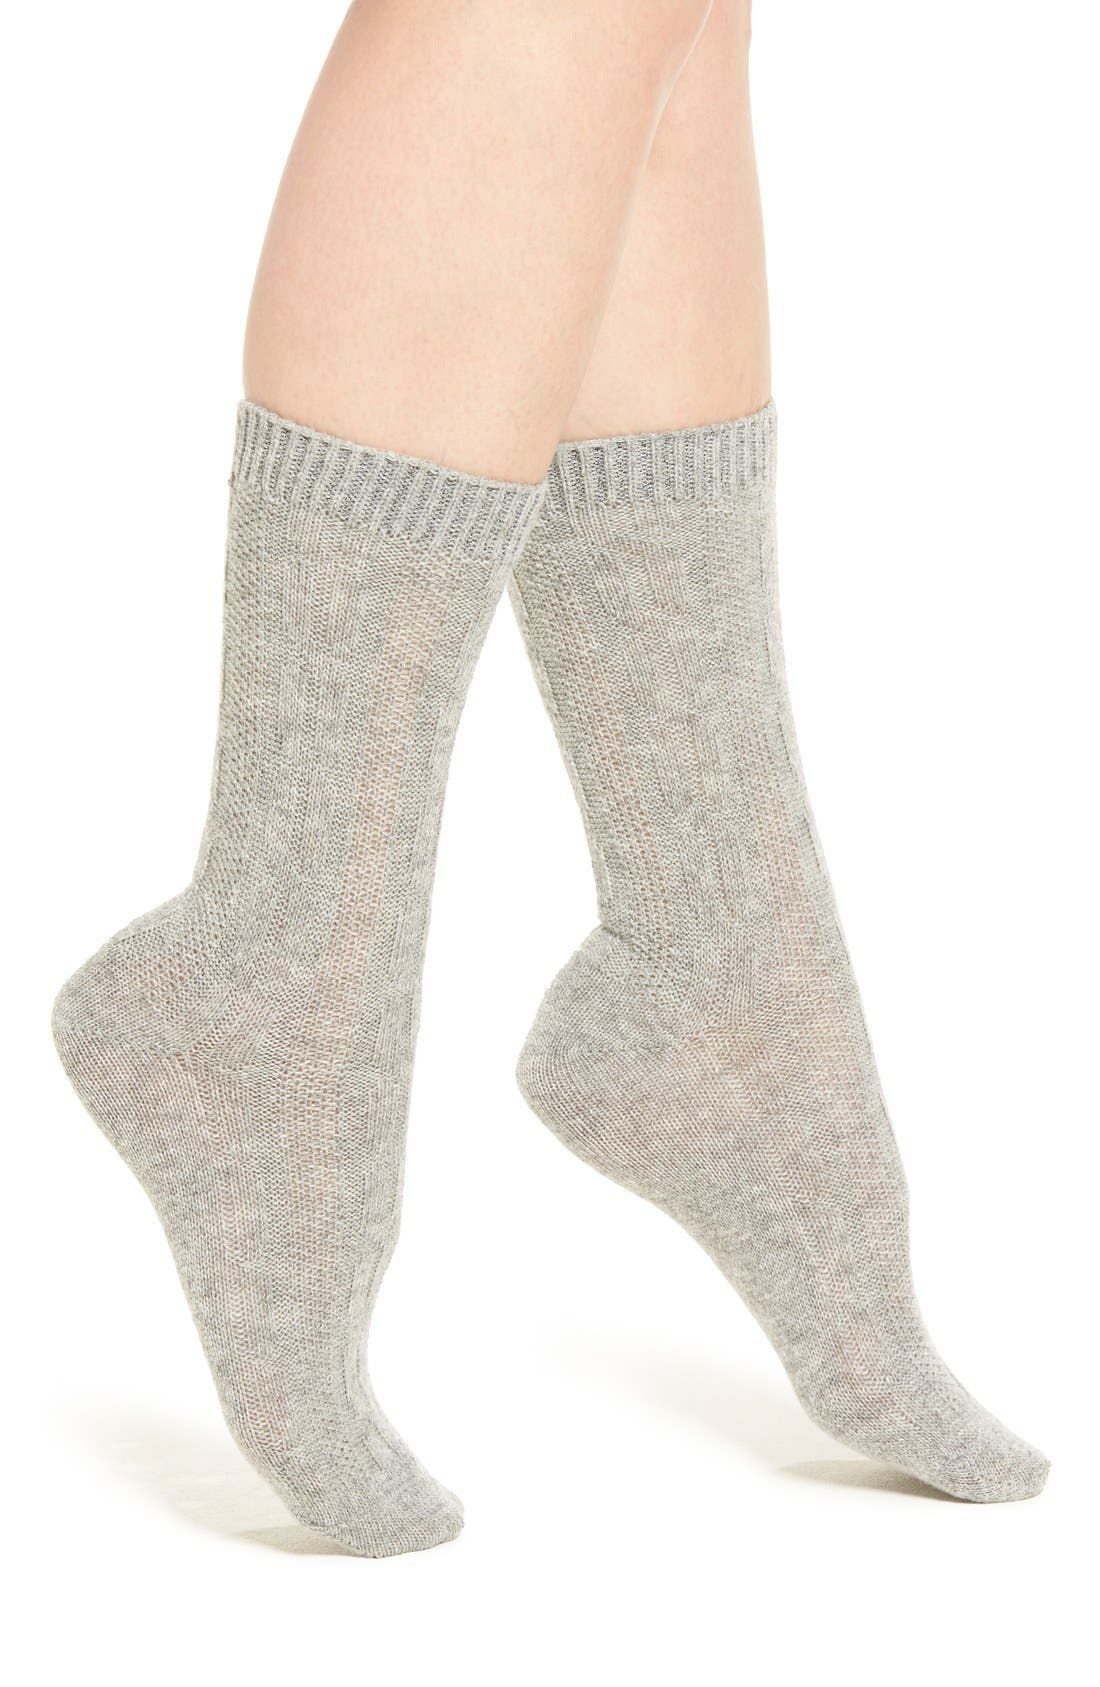 Alternate Image 1 Selected - Nordstrom 'Luxury' Cable Knit Crew Socks